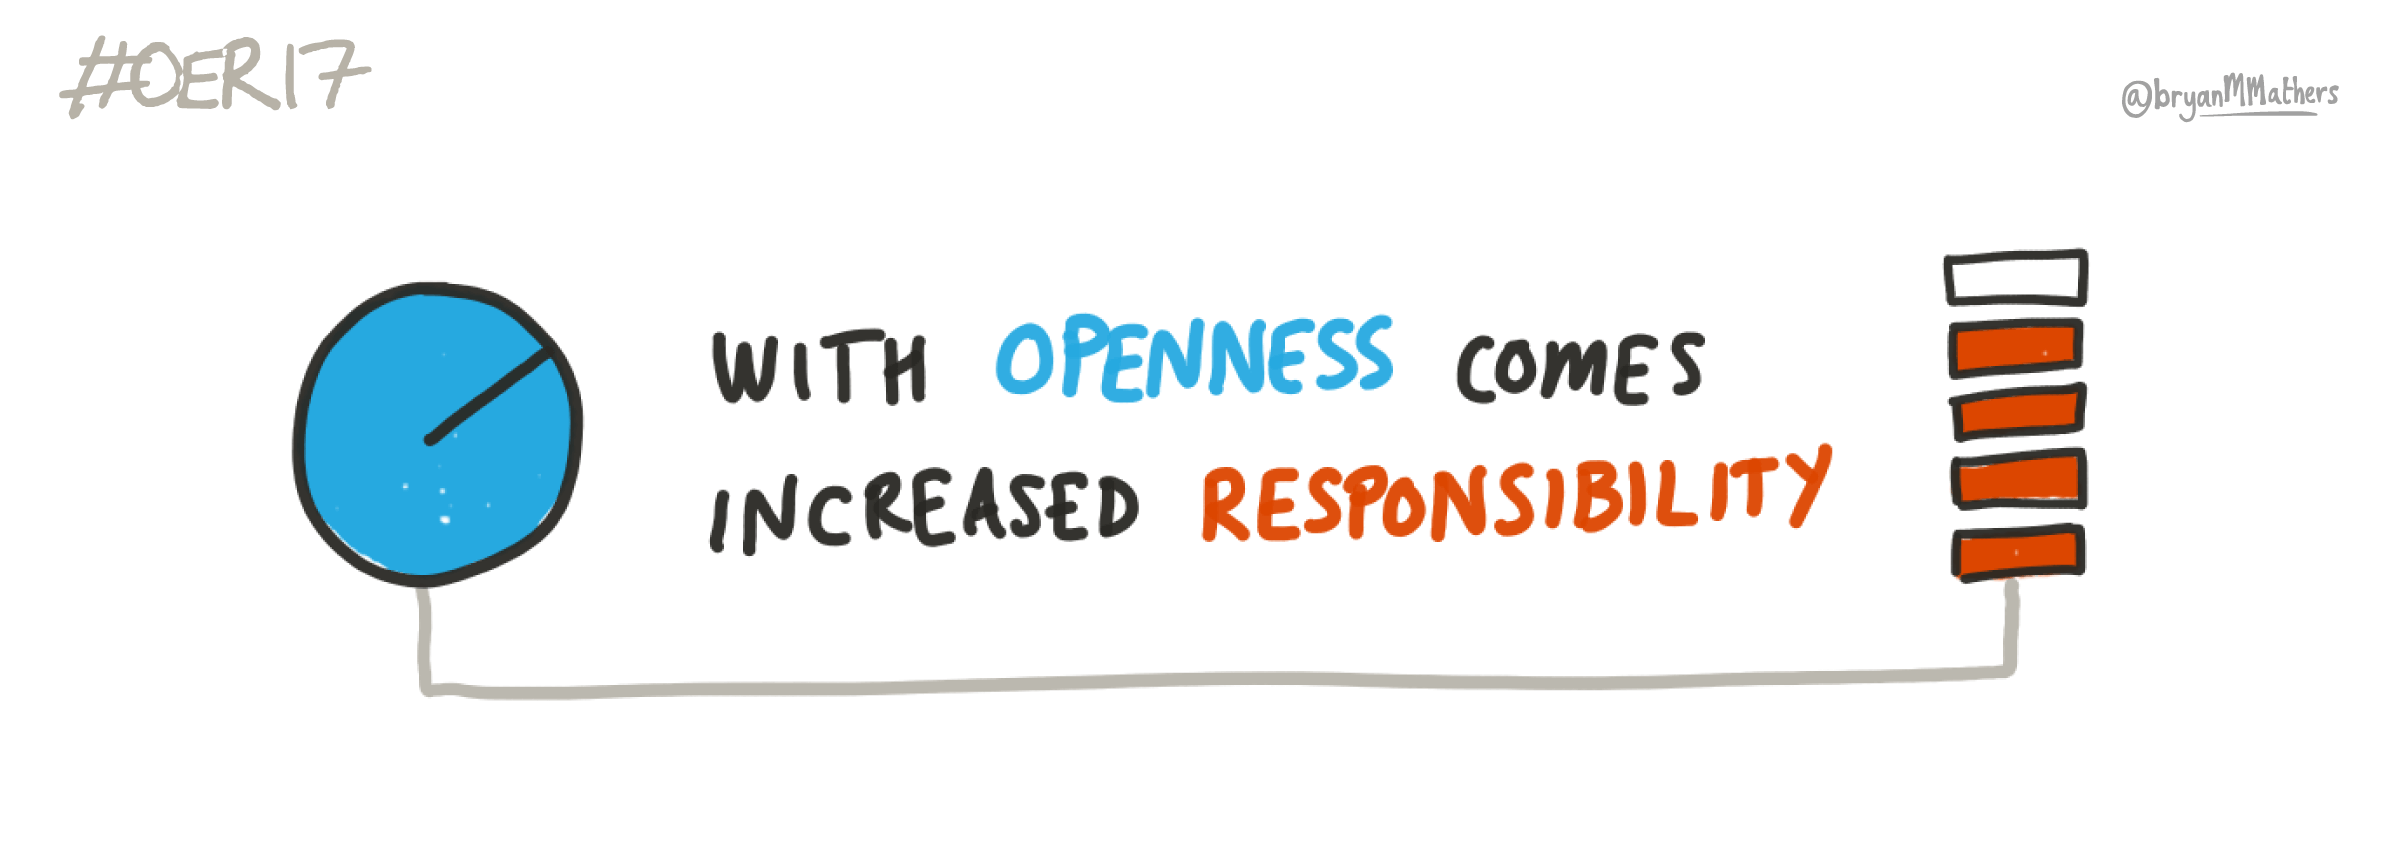 """With Openness comes increased responsibility"" - sketch by Bryan M Mathers (@bryanMMathers), under a CC-BY 4.0 licence"